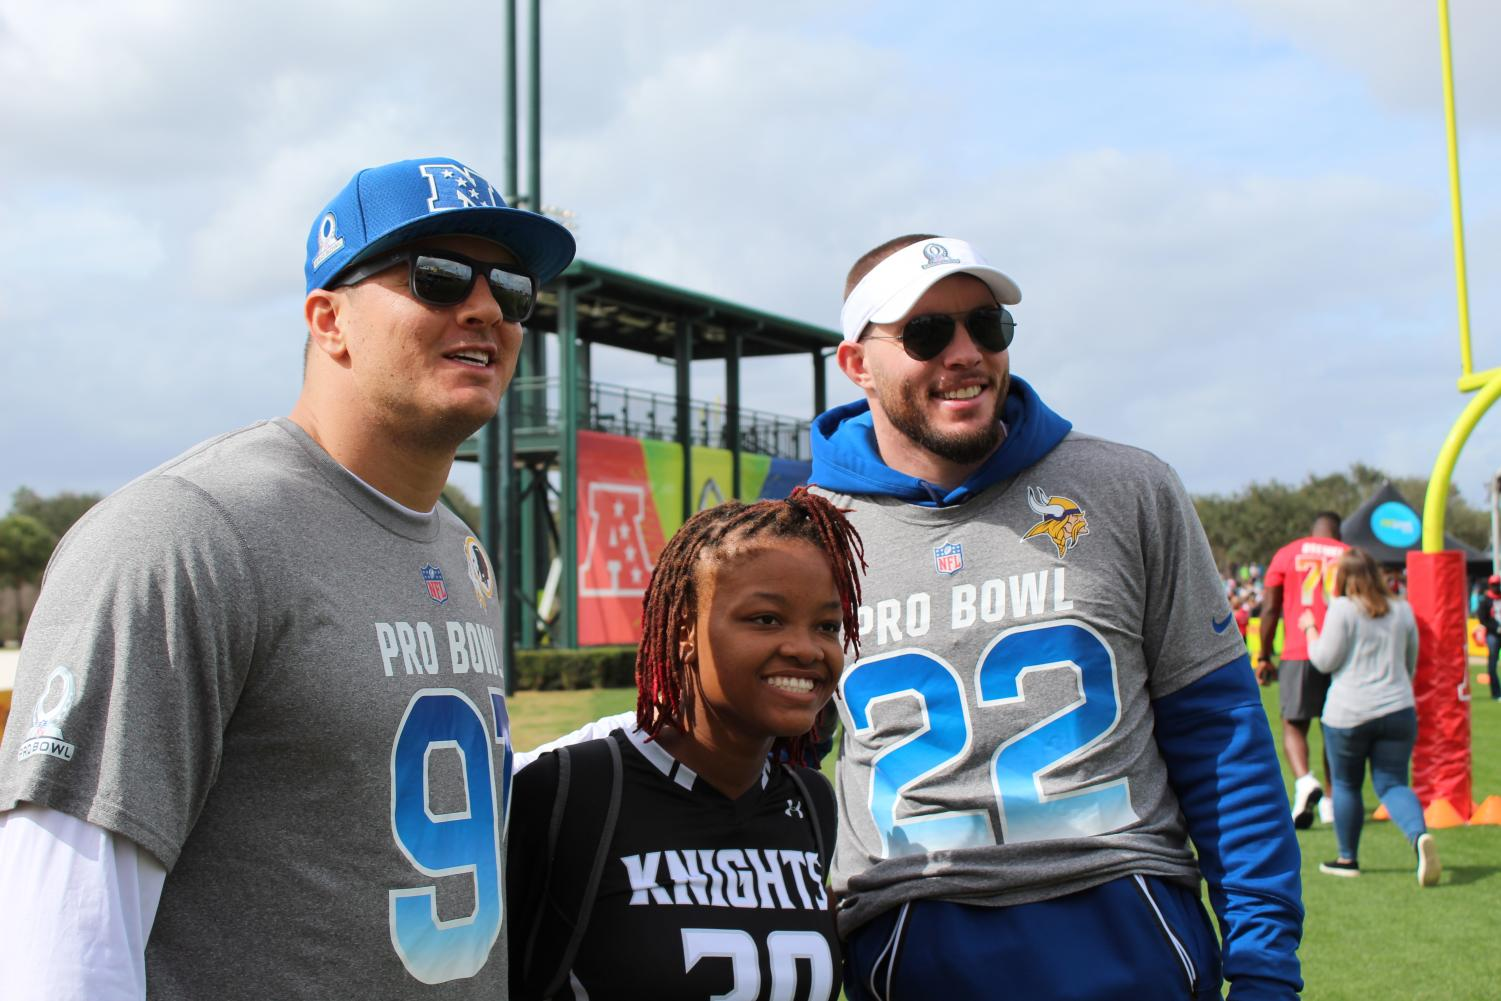 Safety N'Dea Fitzgerald ('21), standing with NFL Pro Bowl players Ryan Kerrigan and Harrison Smith.